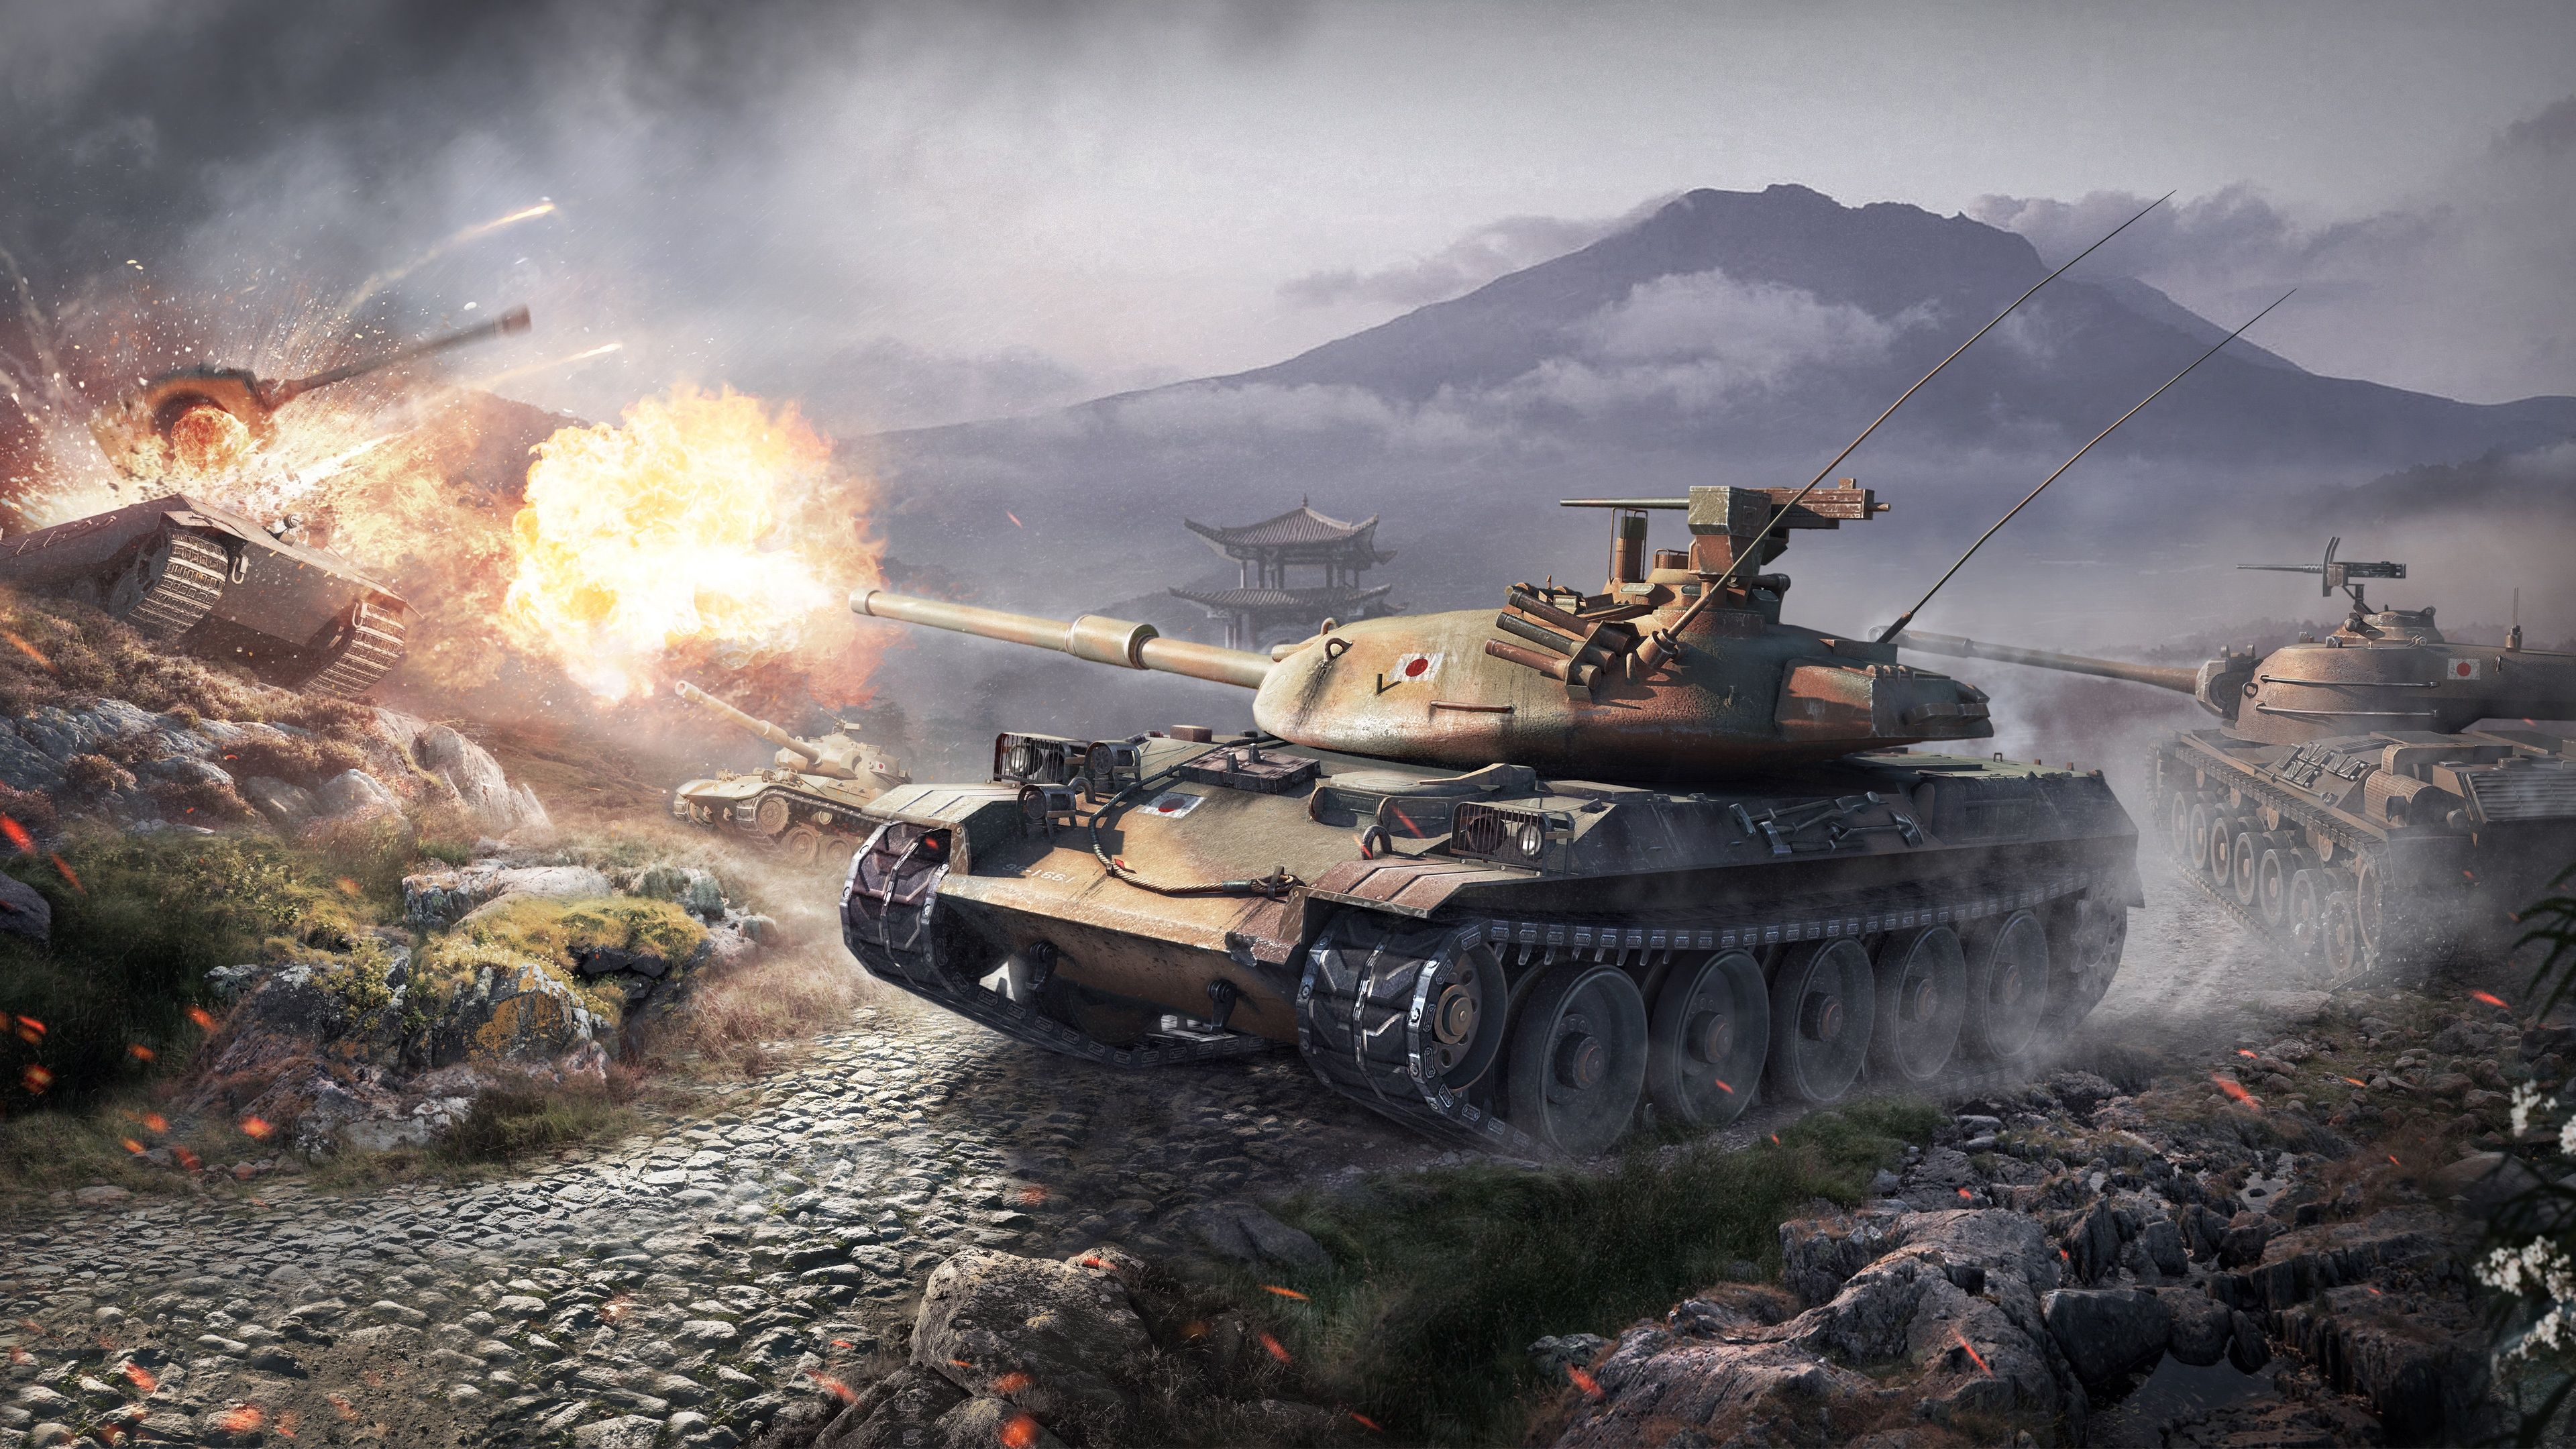 World of Tanks Wallpapers   Top World of Tanks Backgrounds 3840x2160